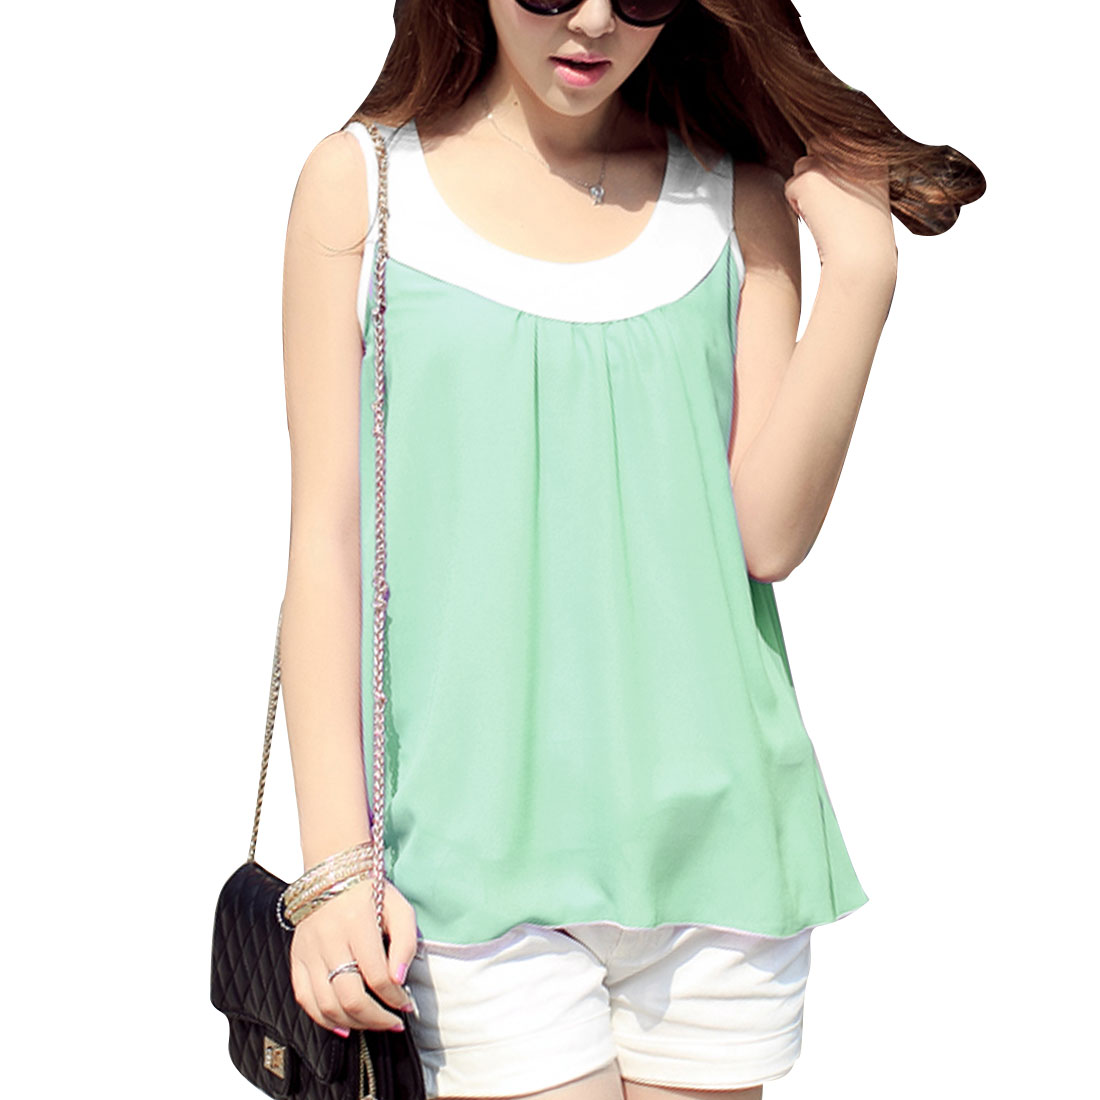 Lady Chic Light Green Semi-Sheer Design Flare Hem Summer Tank Tops S